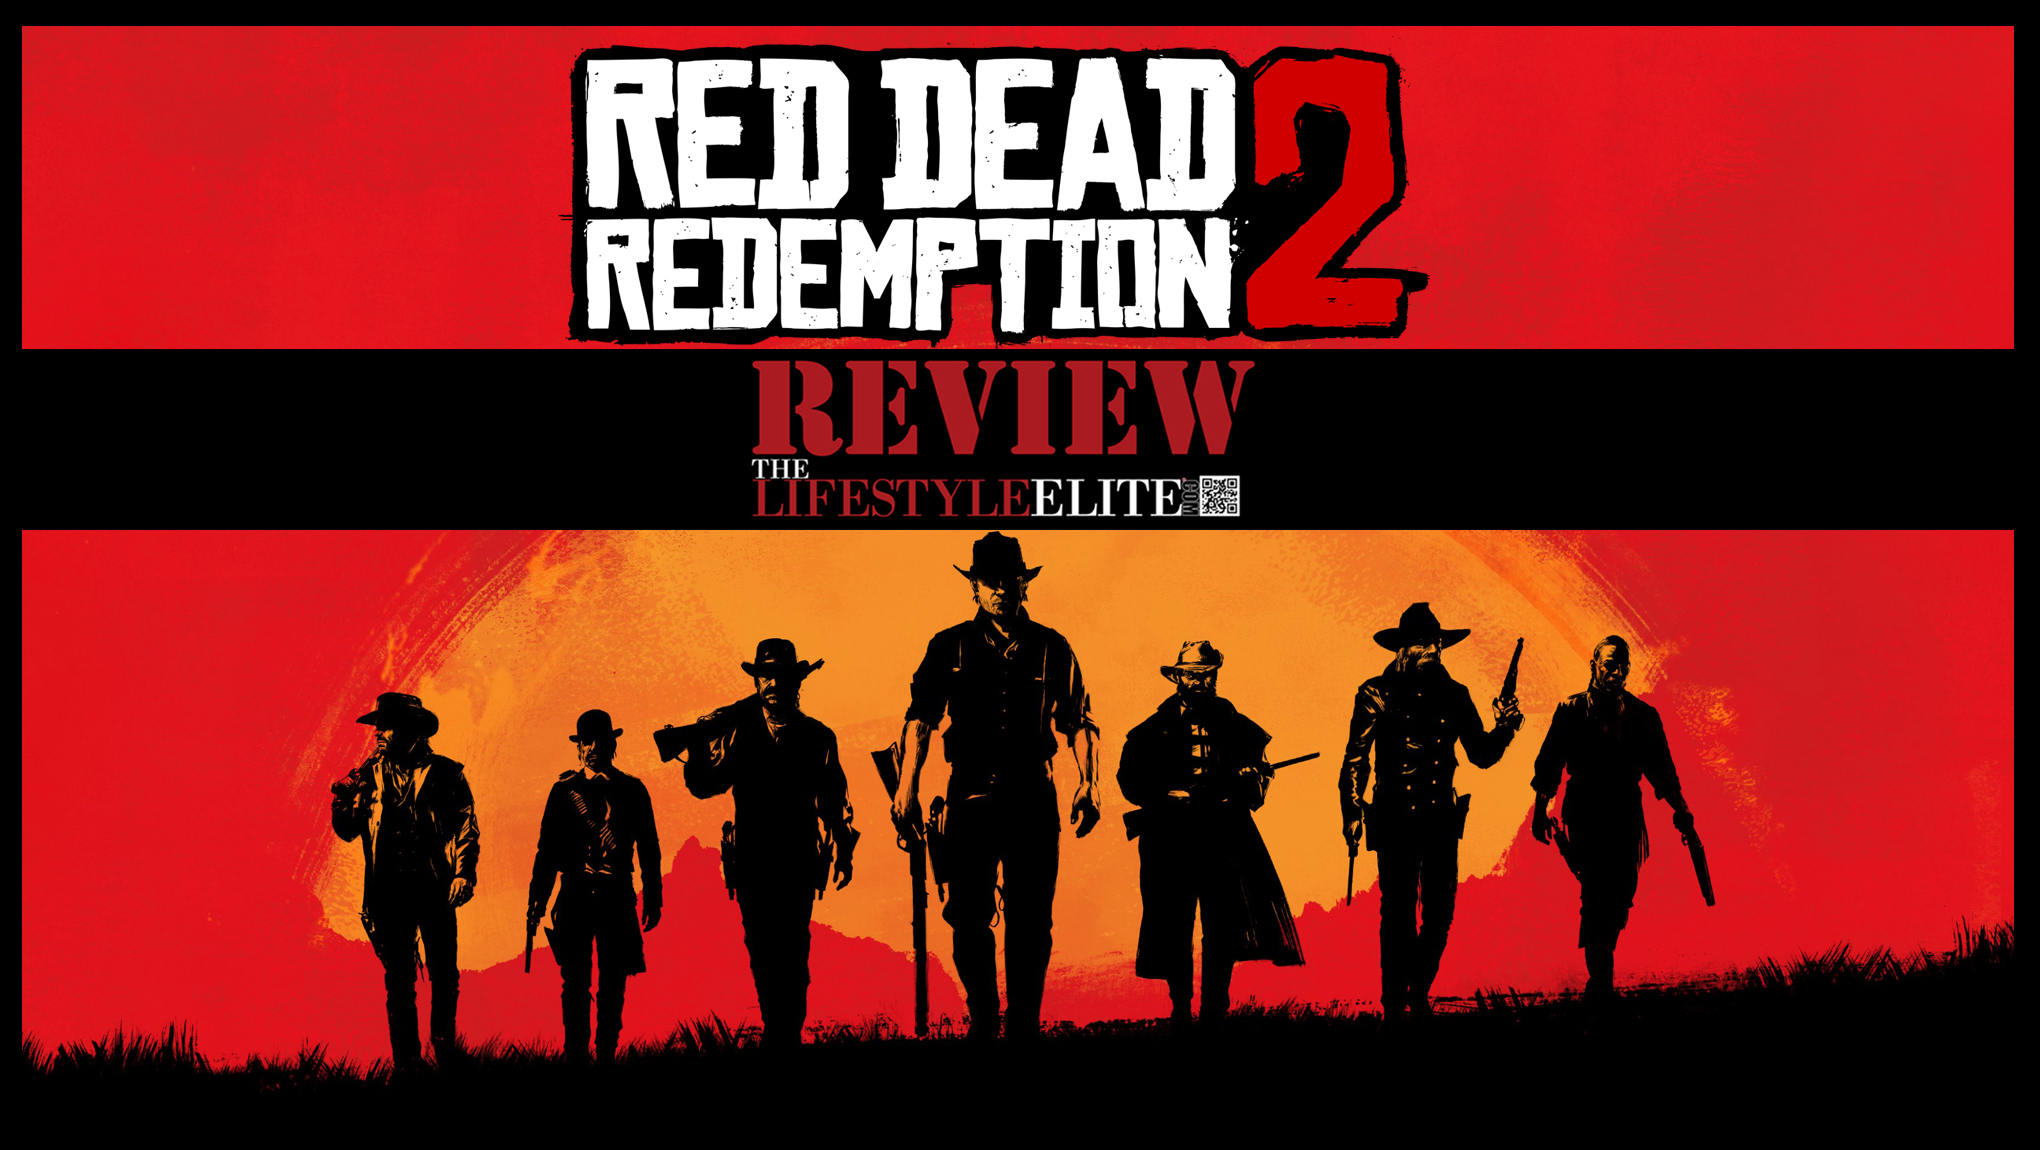 red dead redemption 2 review,,cheyan antwaune gray, cheyan gray, antwaune gray, thelifestyleelite,elite lifestyle, thelifestyleelitedotcom, thelifestyleelite.com,tlselite.com,TheLifeStyleElite.com,cheyan antwaune gray,fashion,models of thelifestyleelite.com, the life style elite,the lifestyle elite,elite lifestyle,lifestyleelite.com,cheyan gray,TLSElite,TLSElite.com,TLSEliteGaming,TLSElite Gaming